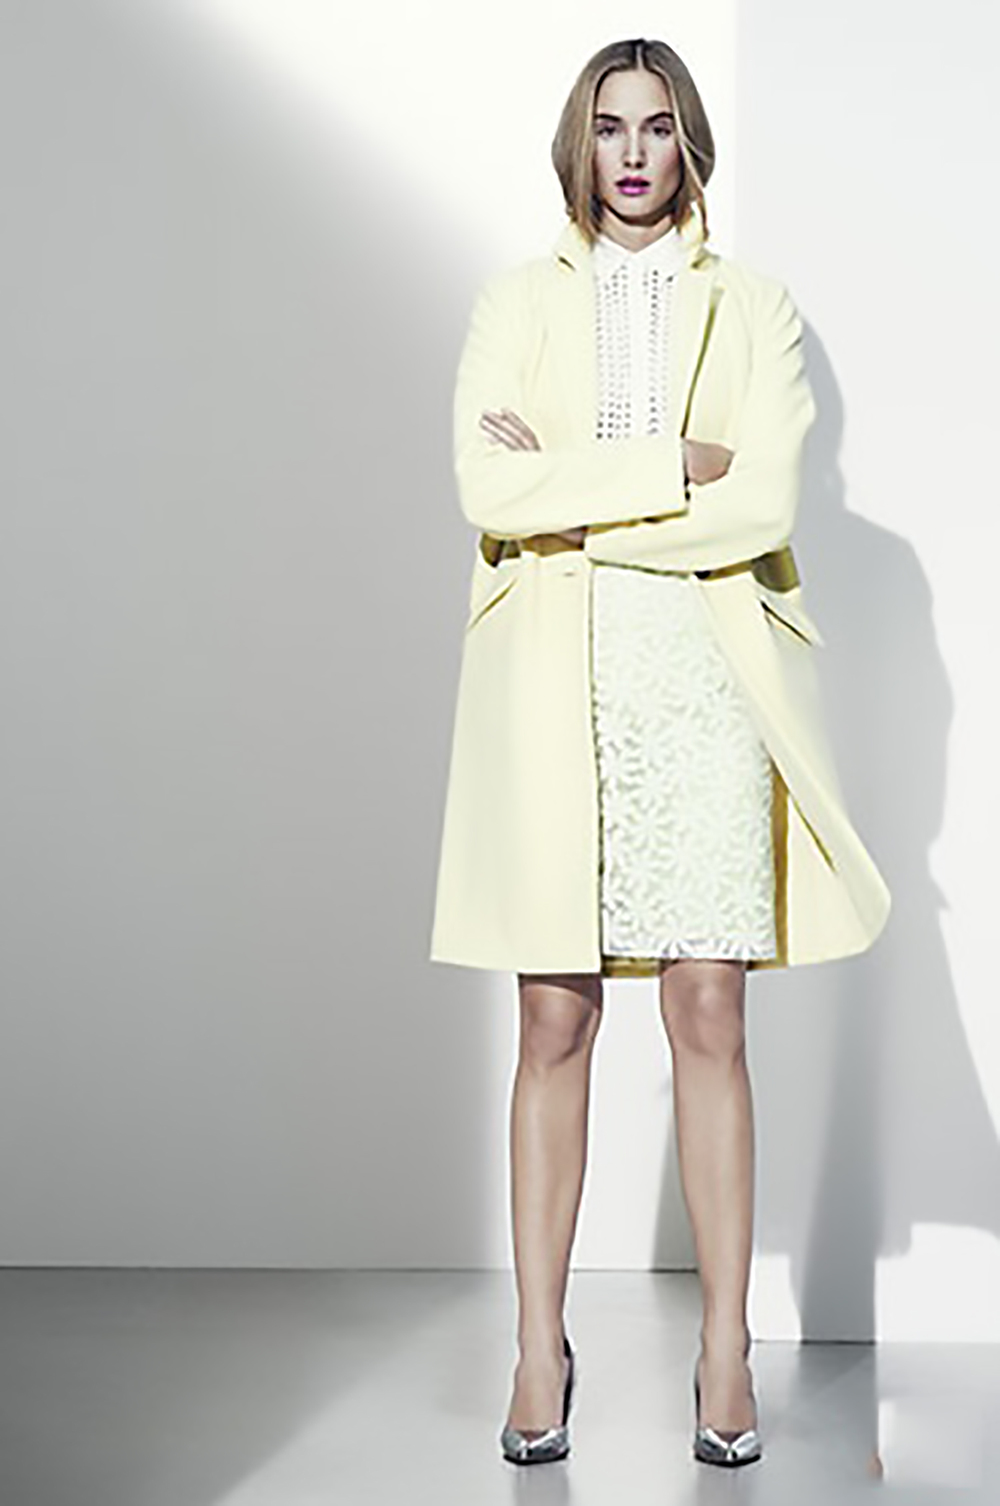 refinery 29 M&S spring catalog 2014_1 M&S 1500.jpg